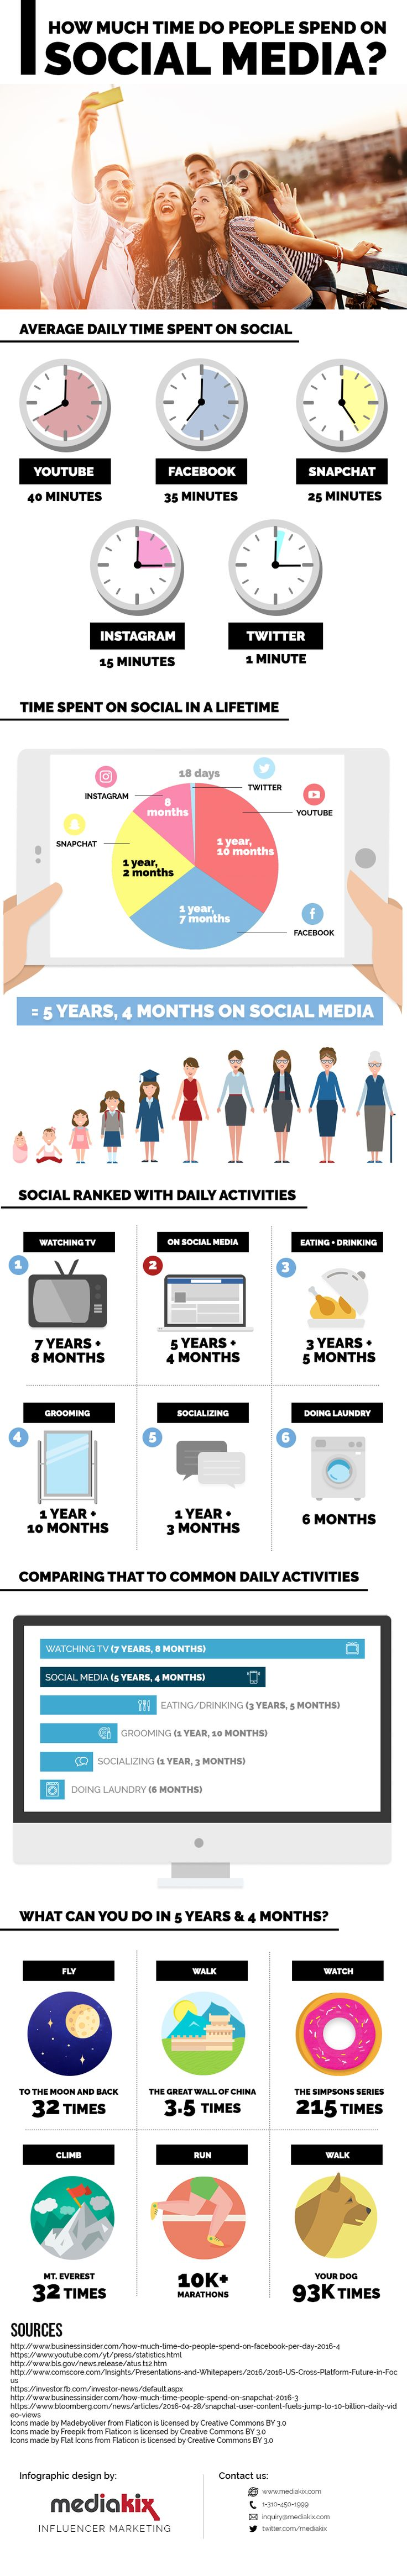 How Much Time People Spend on Social Media in a Lifetime [Infographic]  - @socialmedia2day